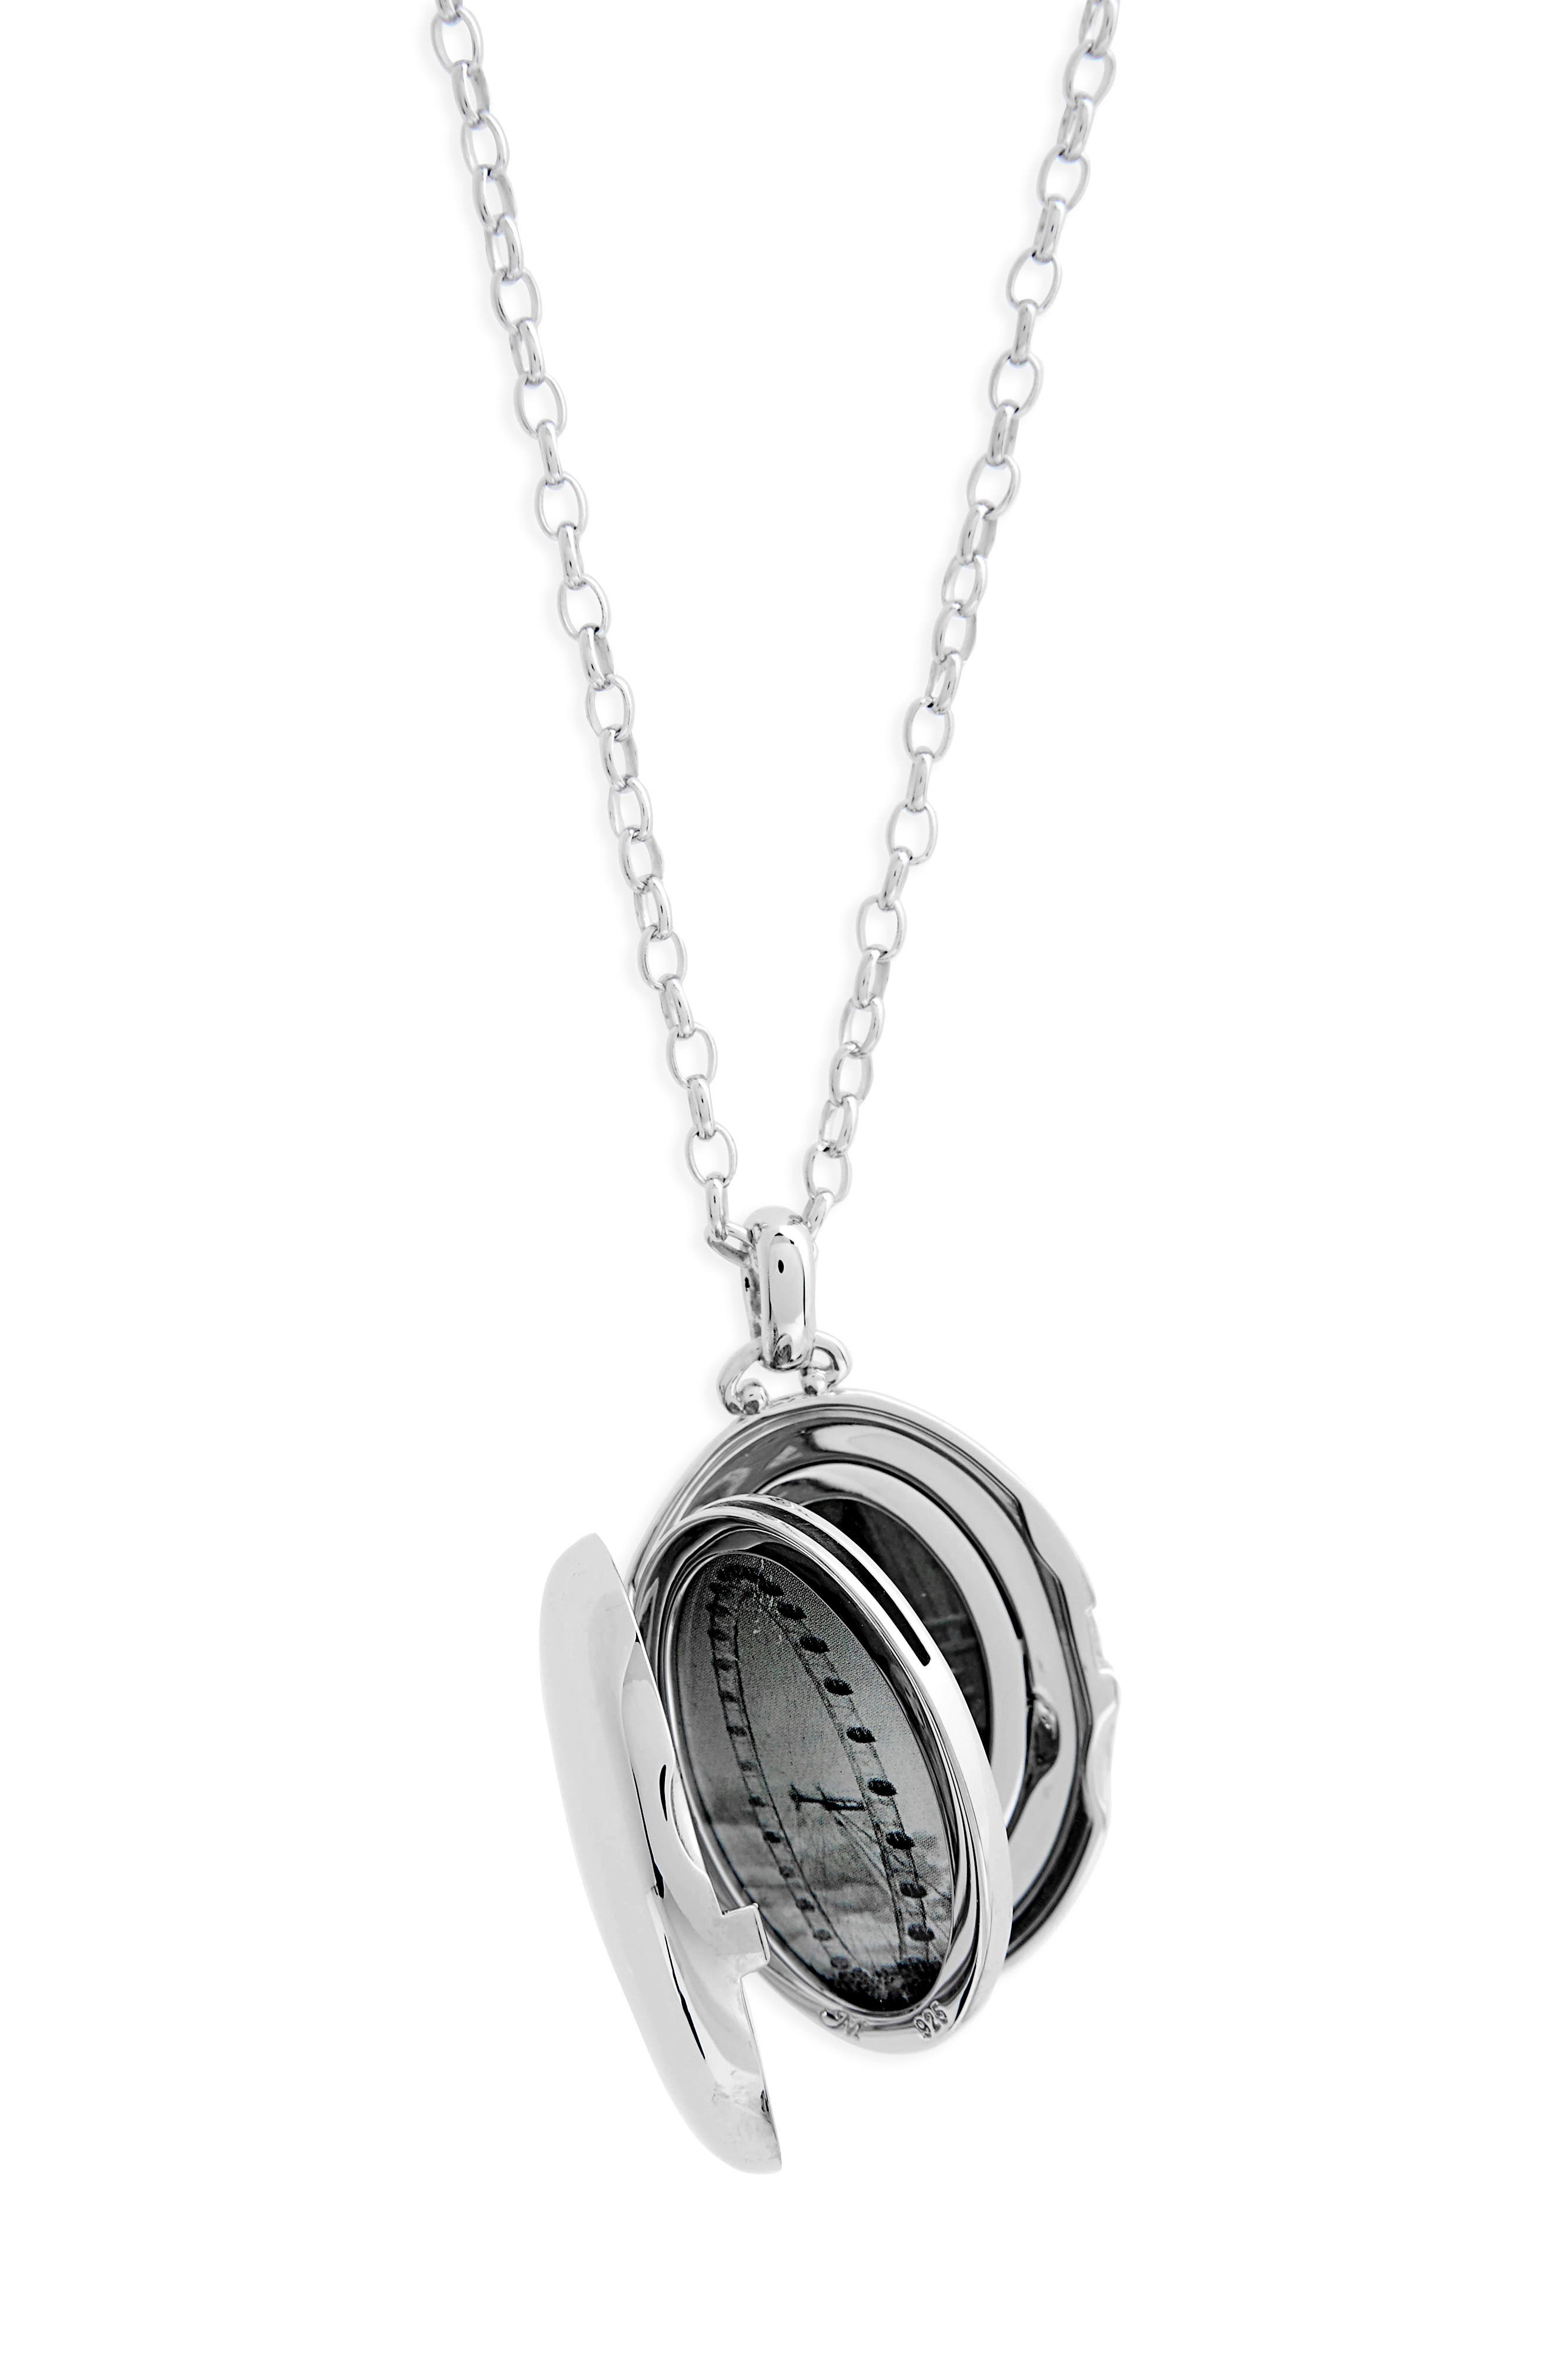 Four Image Oval Locket Necklace,                             Alternate thumbnail 3, color,                             Sterling Silver